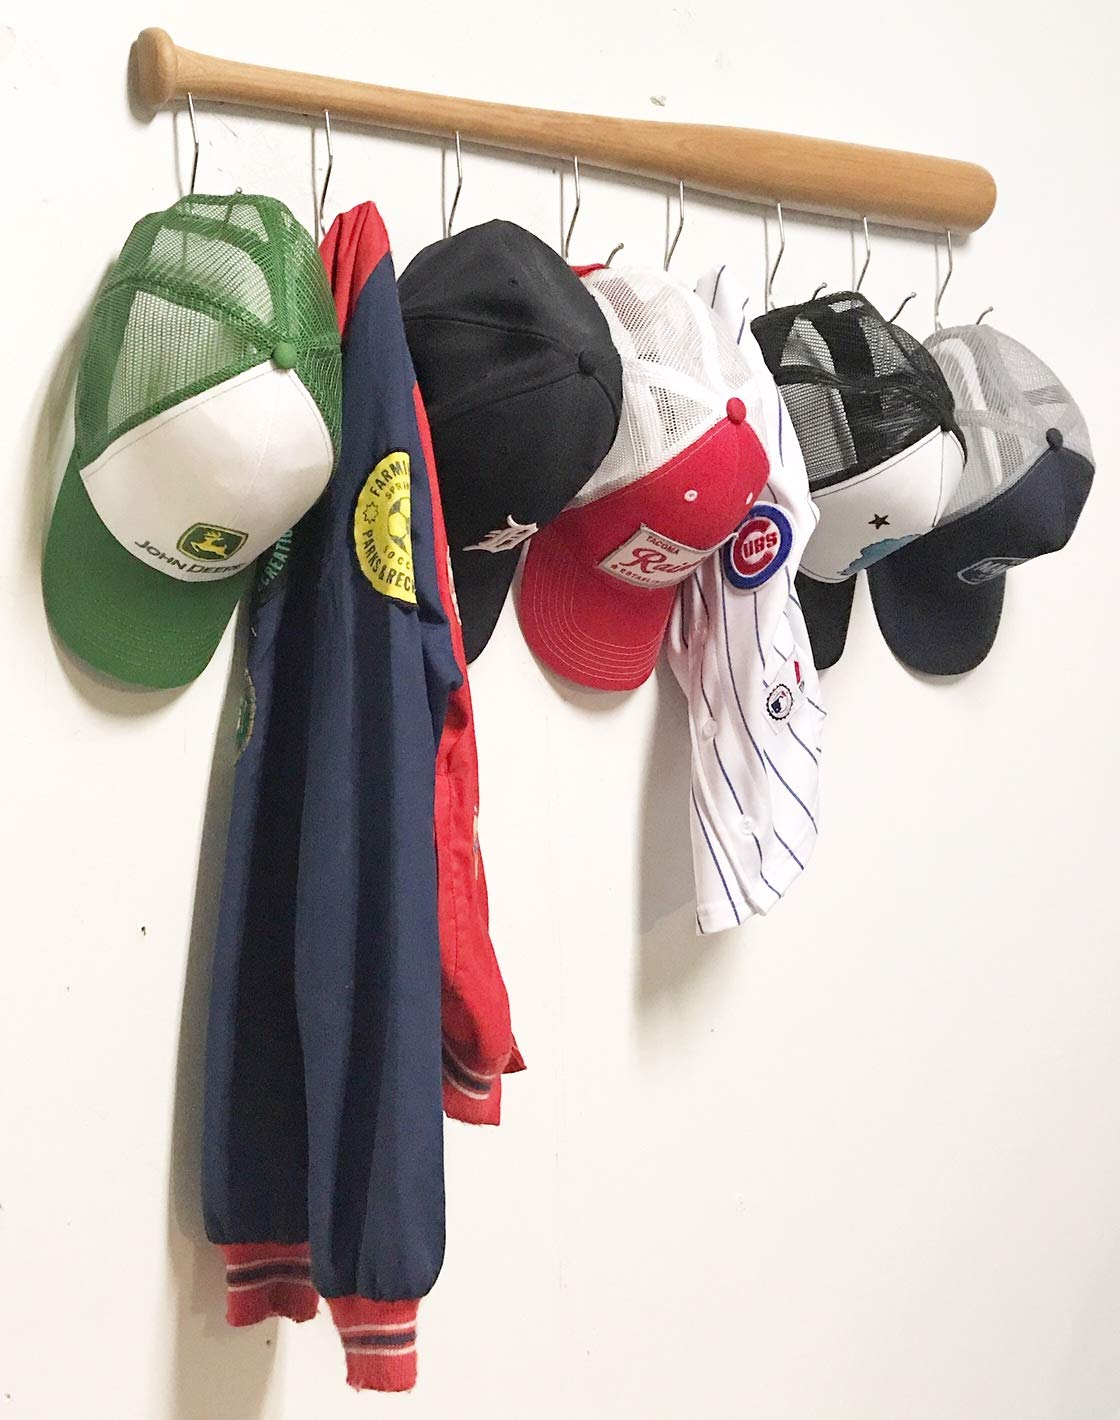 KT Bats Coat Rack Wall Mount Baseball Bat Cap Hat Towel Jersey Display no Assembly Required Unique Idea for Sports Fans Perfect Mudroom Bedroom ...